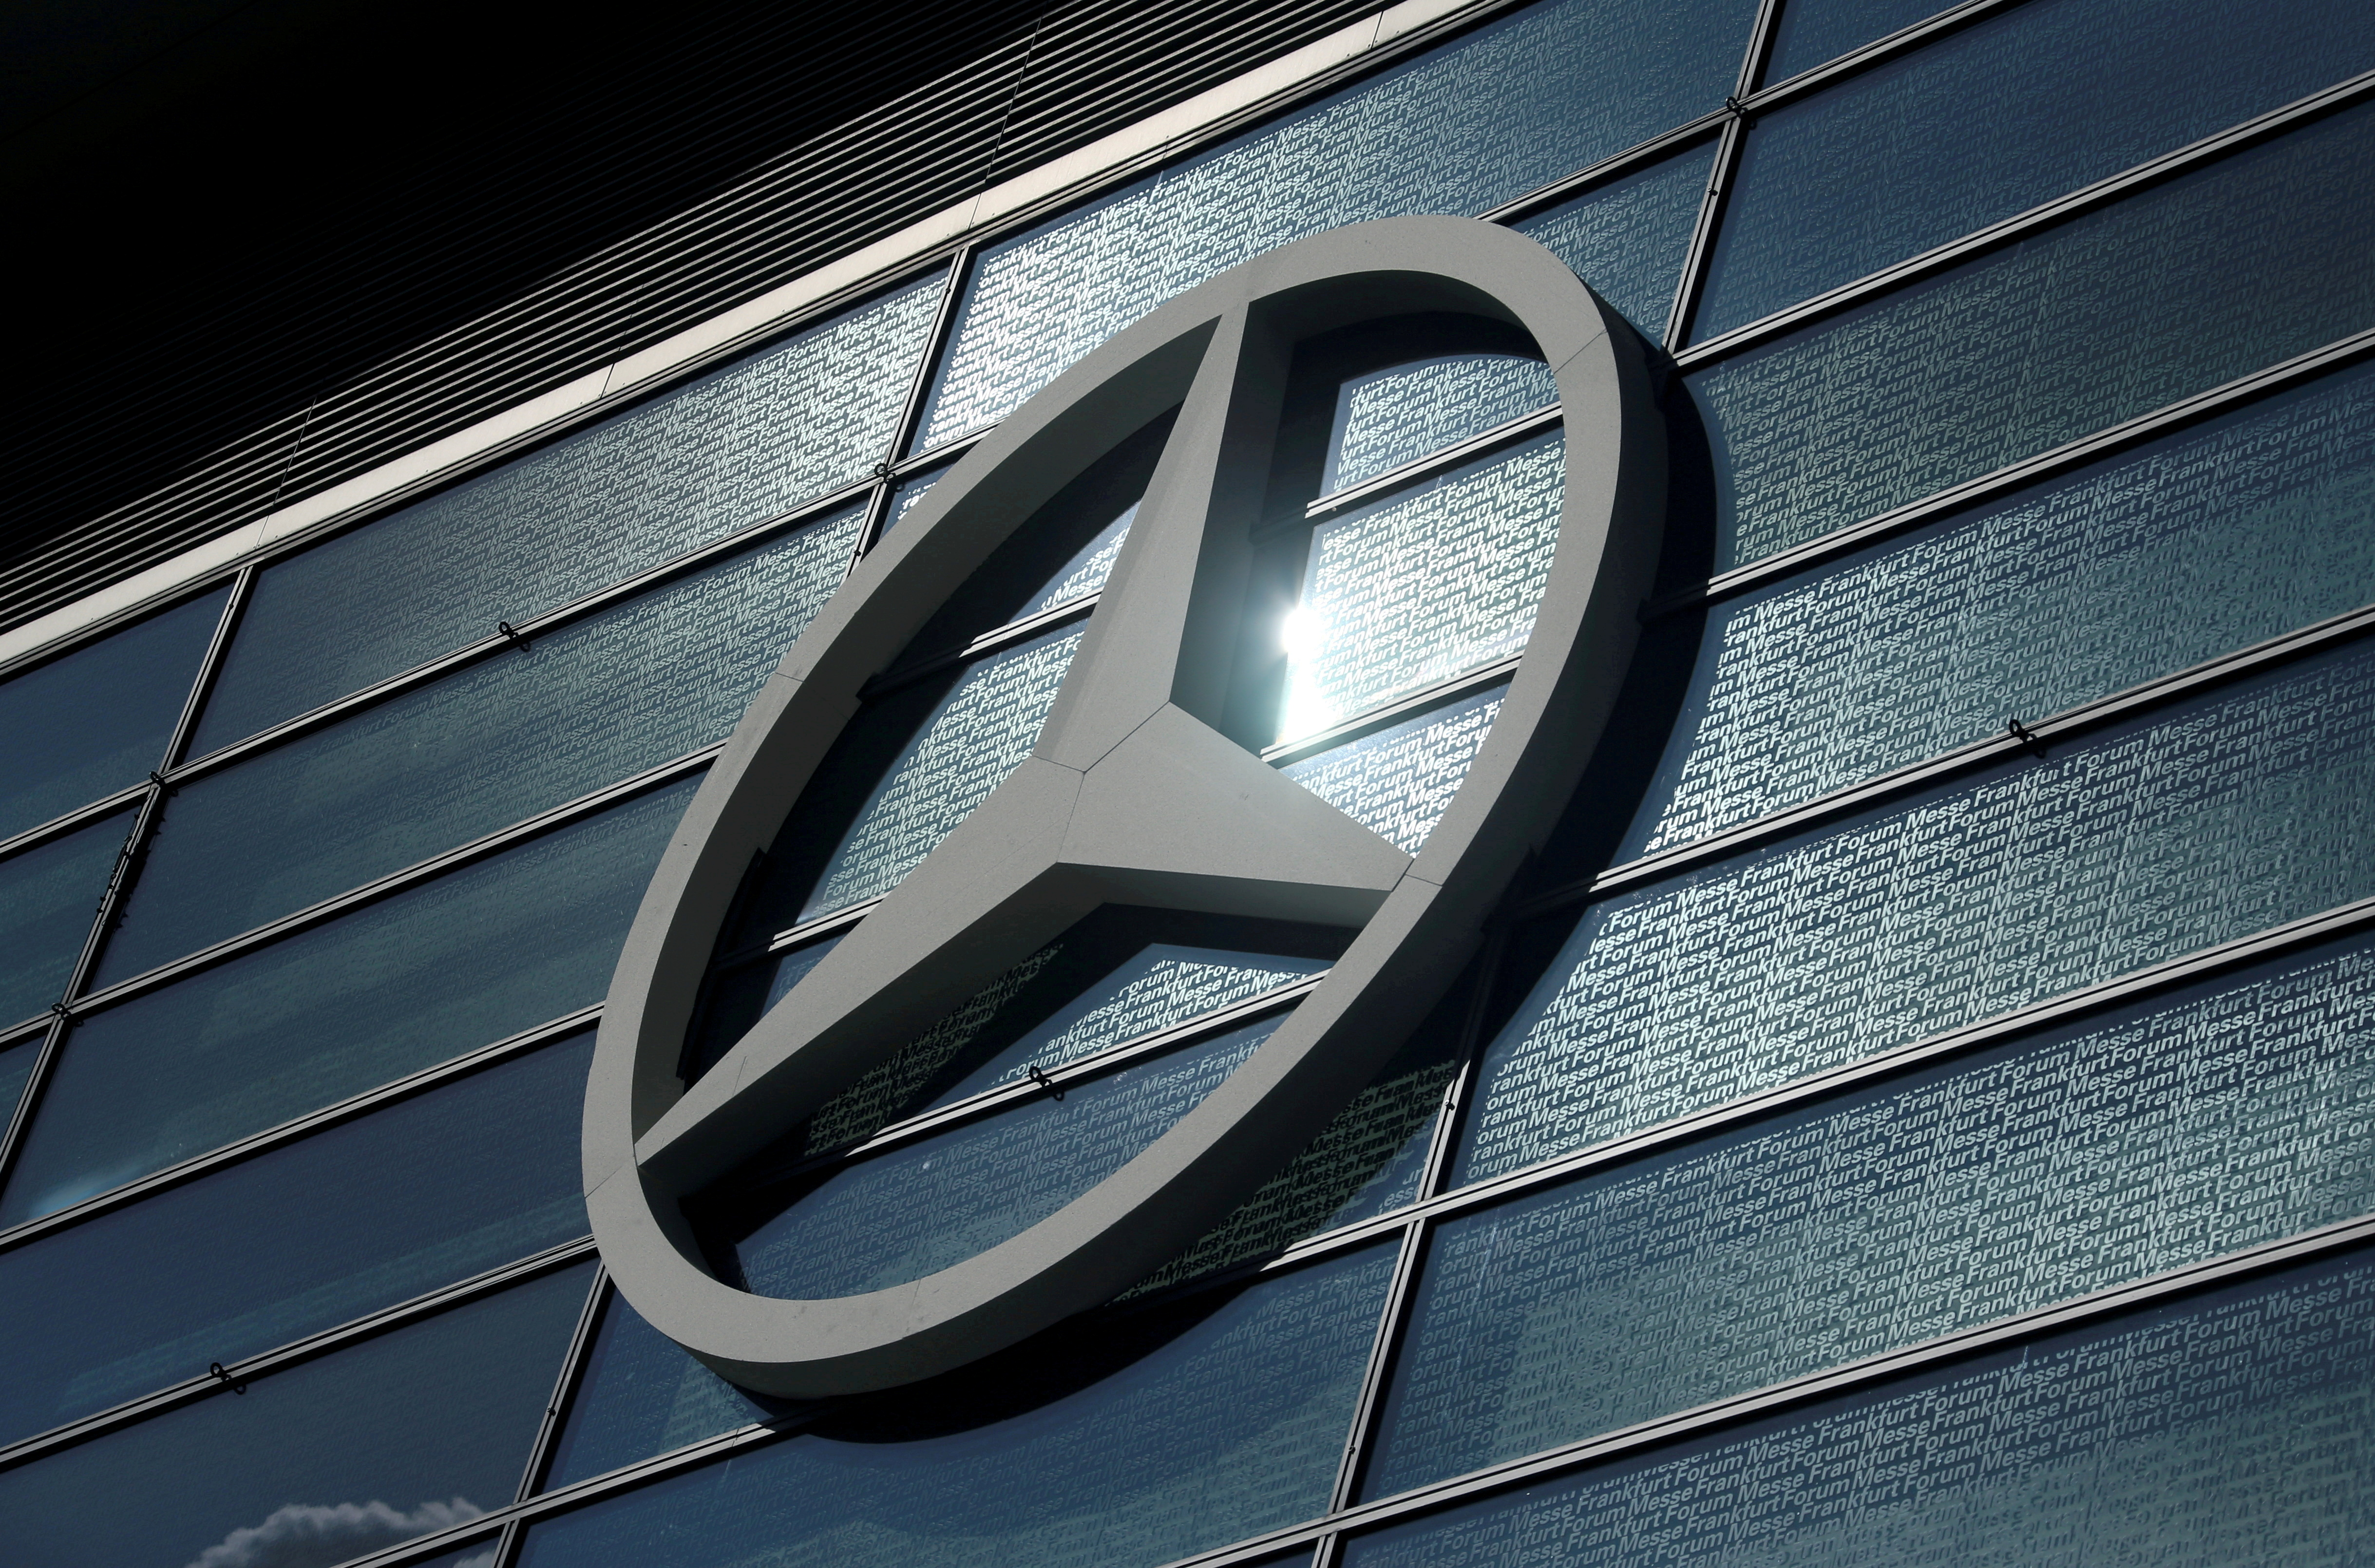 The Mercedes-Benz logo is pictured at the 2019 Frankfurt Motor Show (IAA) in Frankfurt, Germany, September 10, 2019. REUTERS/Ralph Orlowski